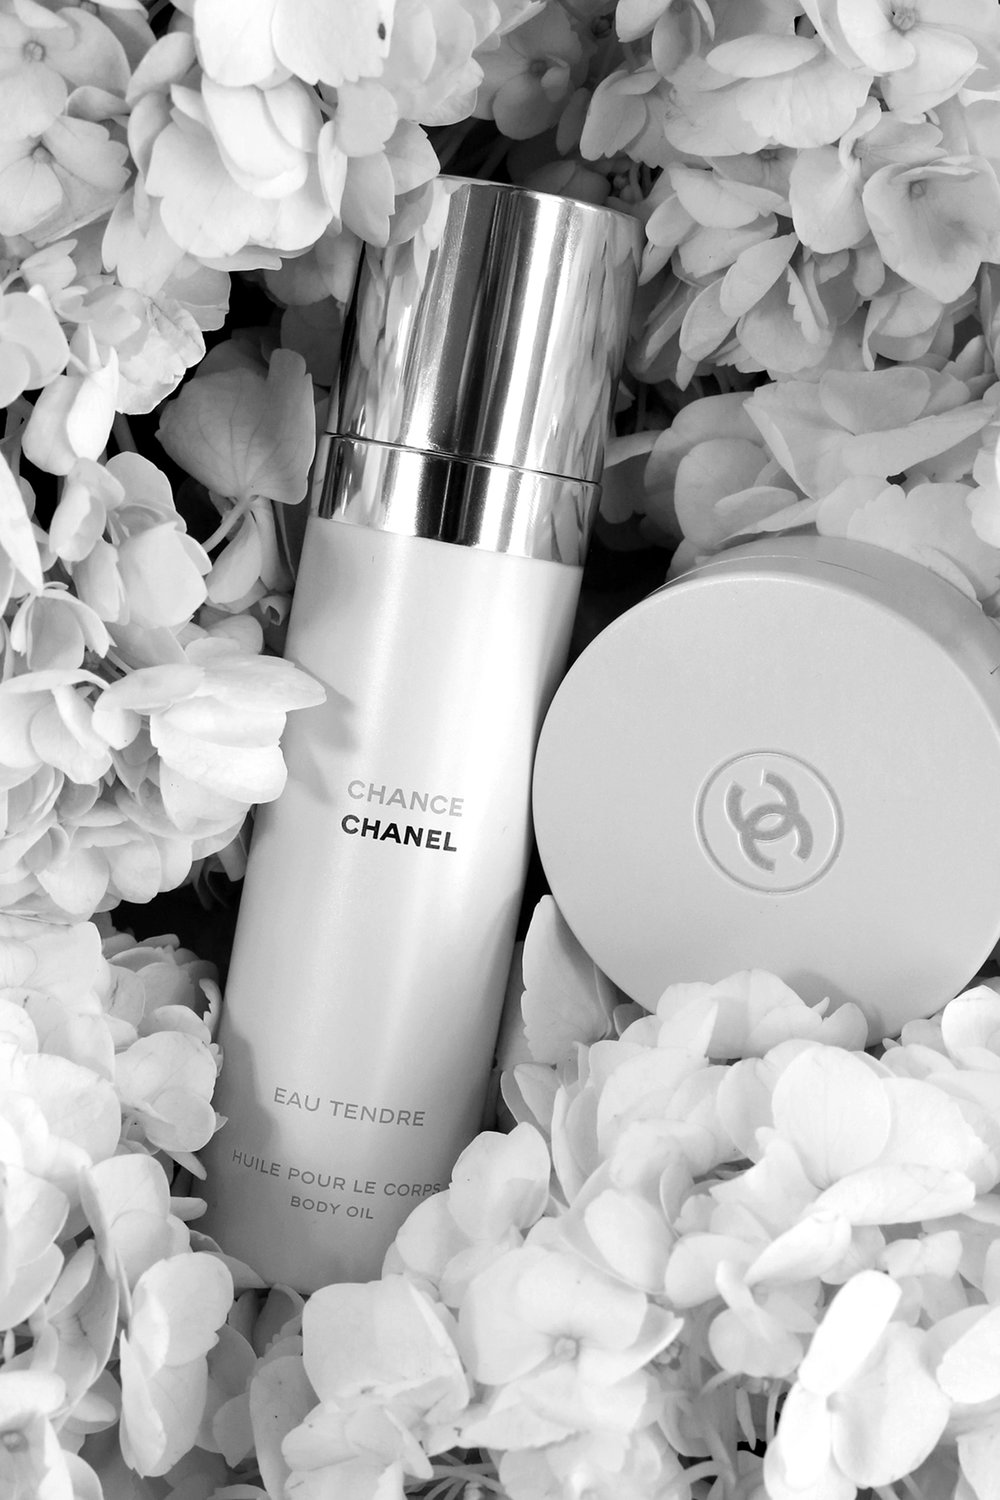 CHANEL Chance Body Oils and Fragrance Cushion Compact - woahstyle.com_7881 bw.jpg